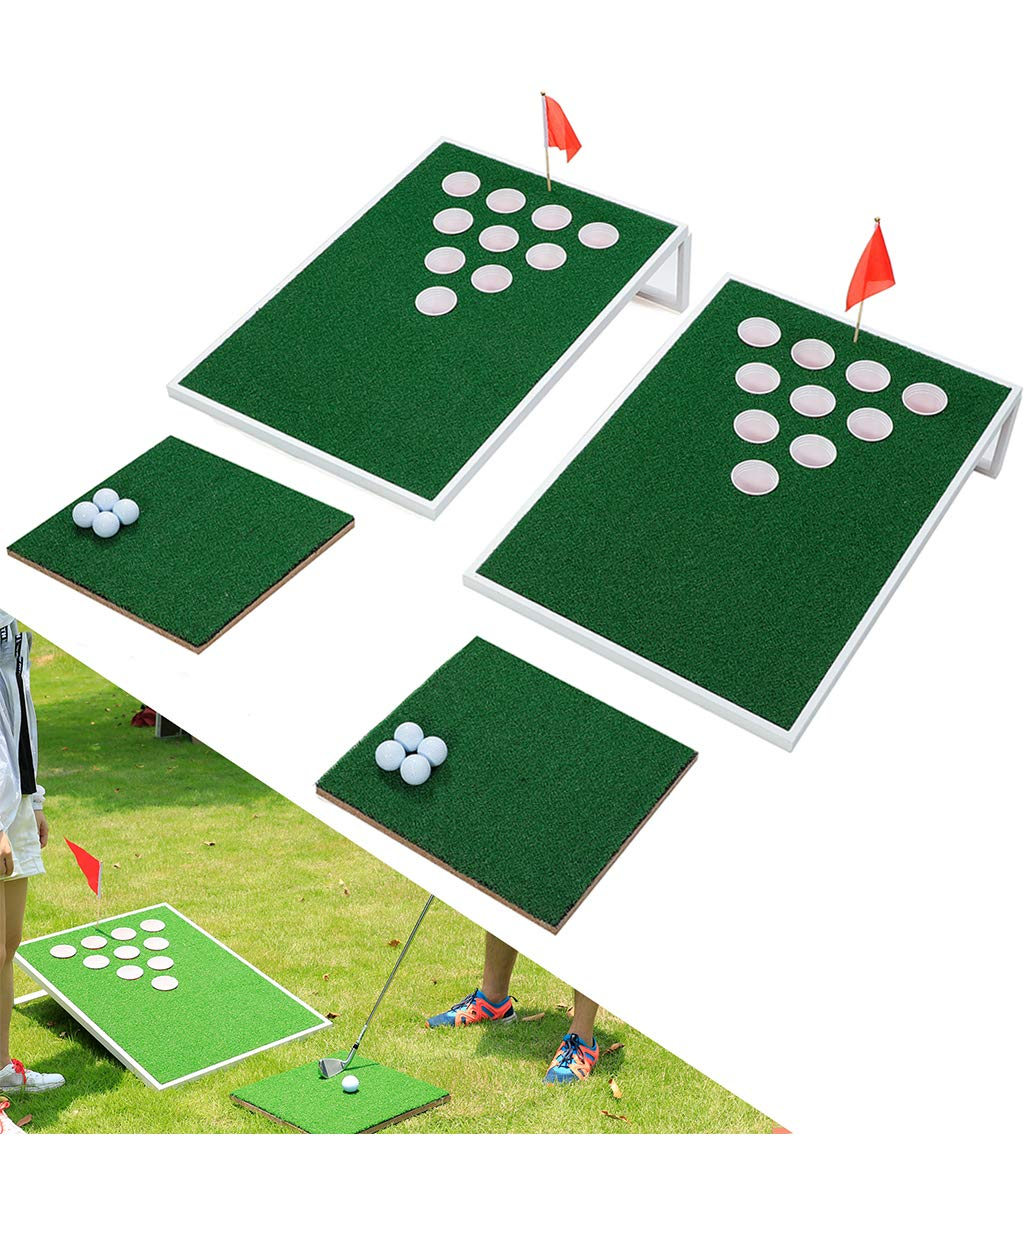 SPRAWL Golf Cornhole Beer Pong Set Board Mini Golf Practice Training Great Backyard Game for Your Family and Friends by SPRAWL